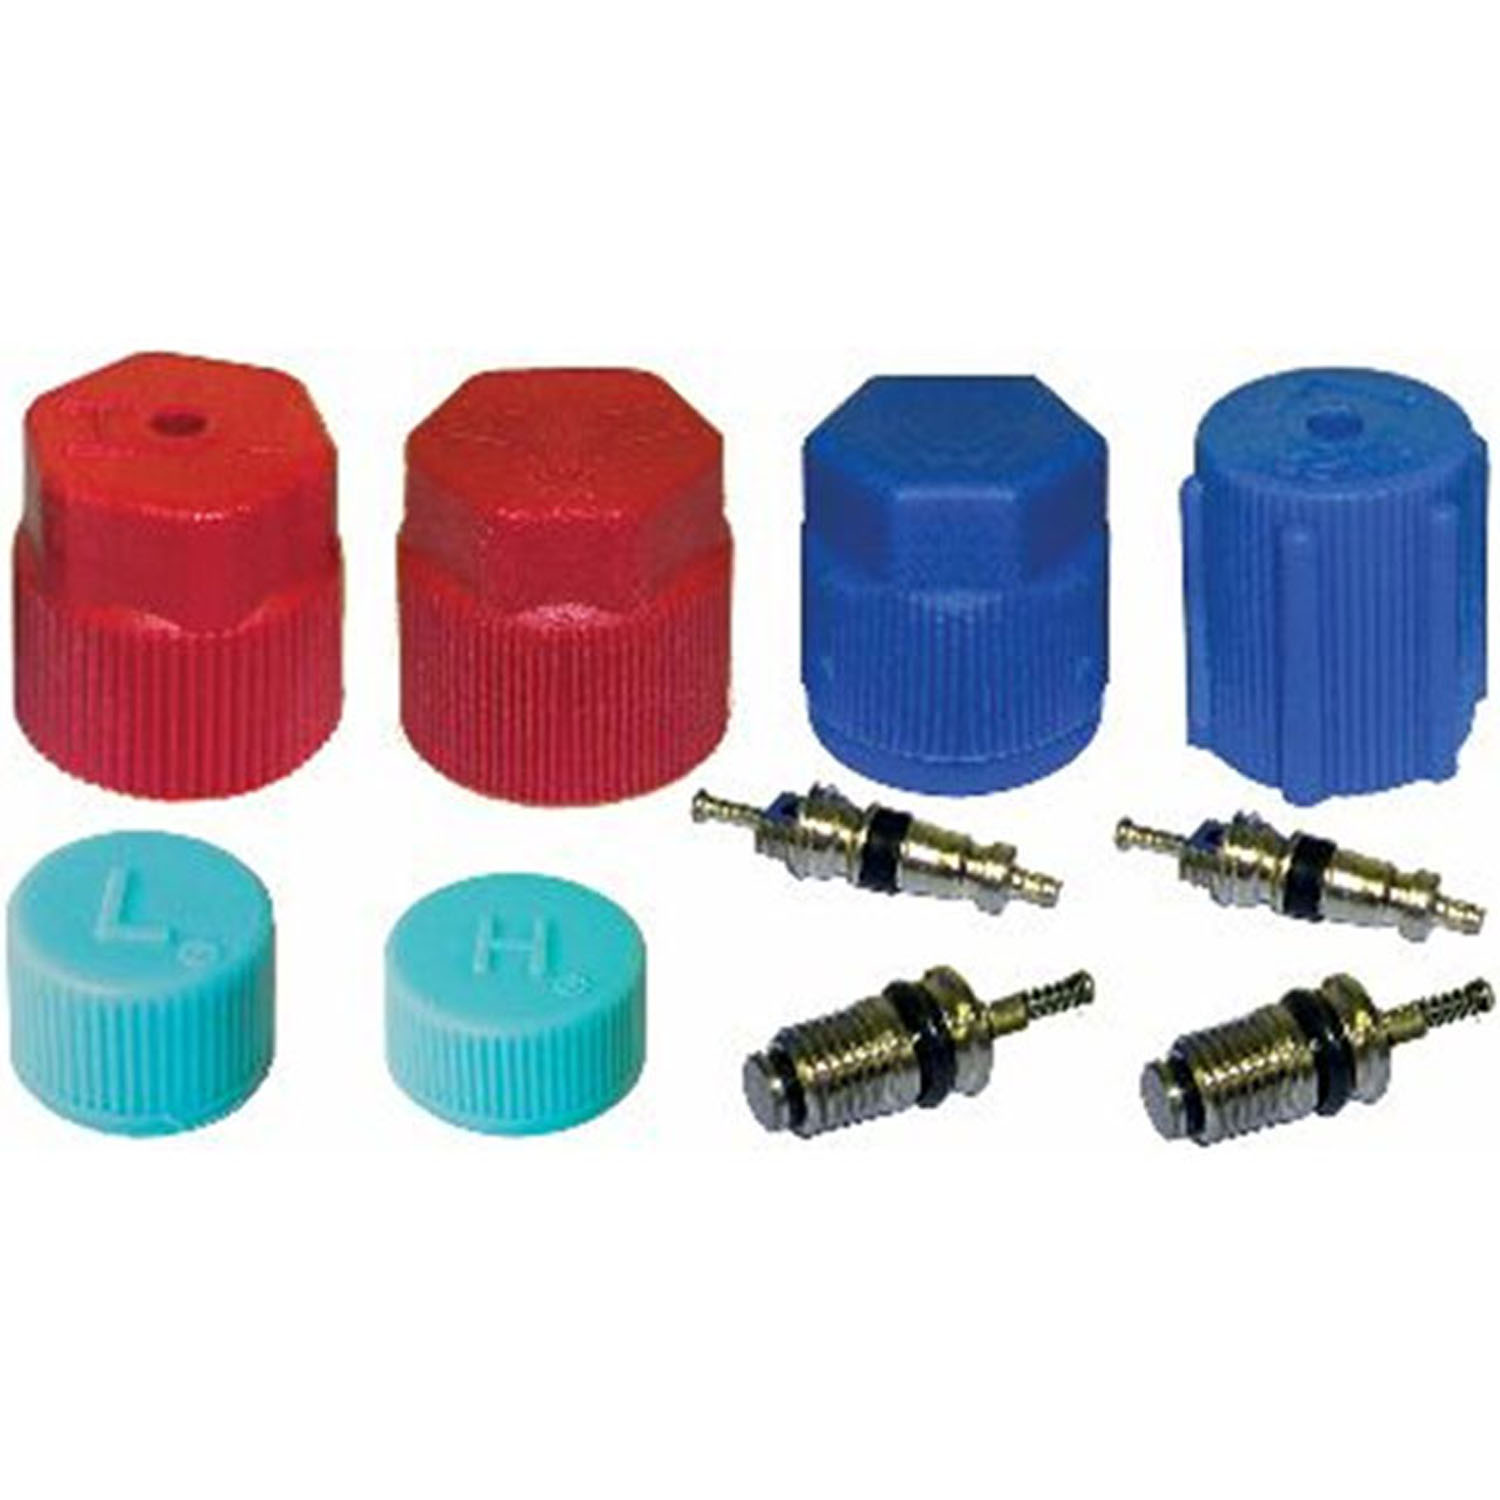 Valve and Cap Kit VC 2909